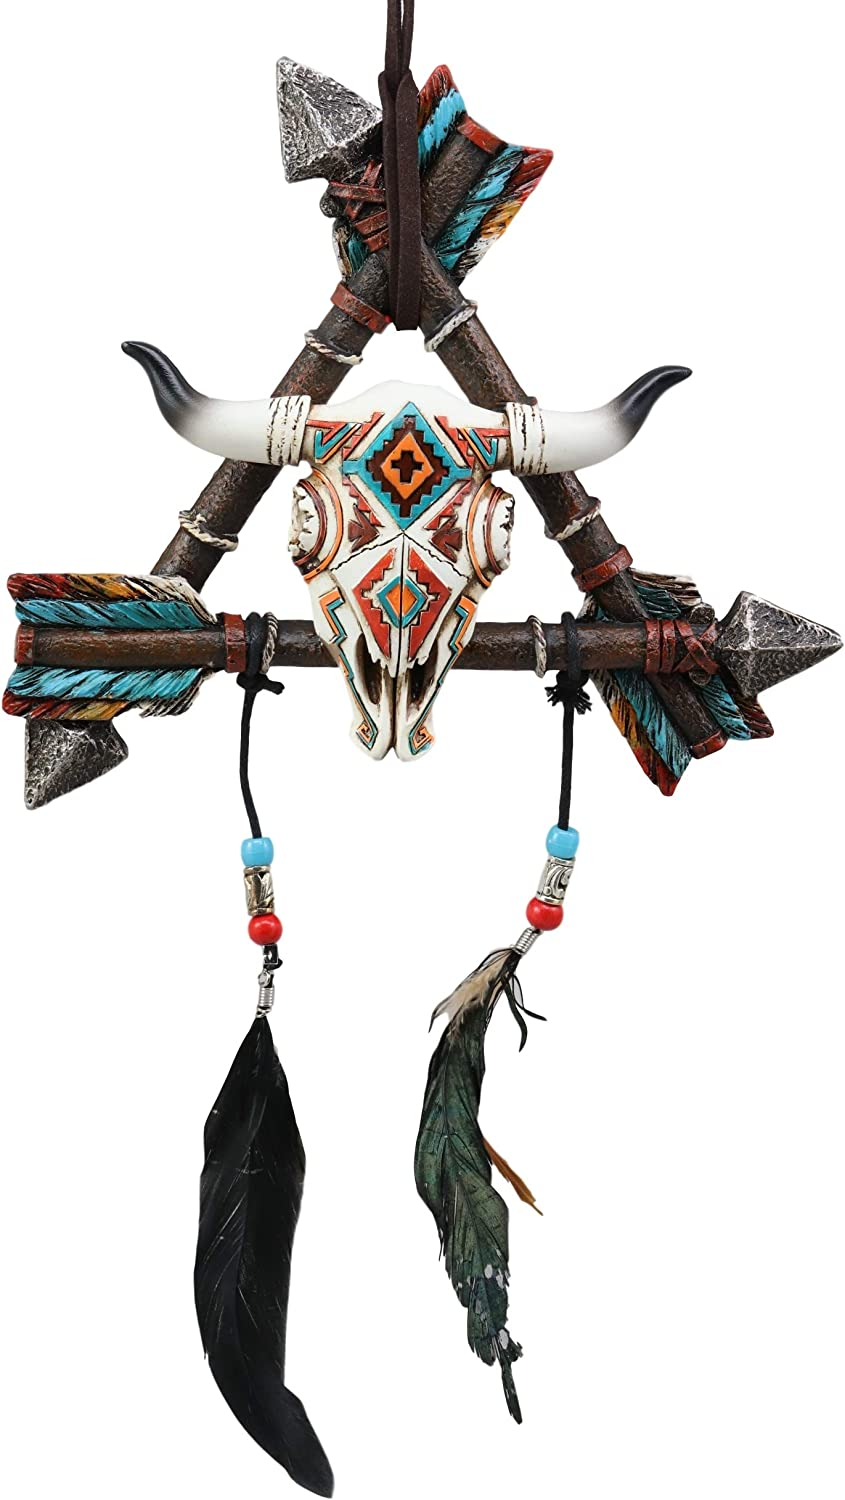 Ebros Native American Indian White Lightning Sacred Buffalo with 3 Arrows Dreamcatcher with Beaded Feathers Wall Hanging Decor Dream Catcher Decoration Ornament Hanger for Home and Office